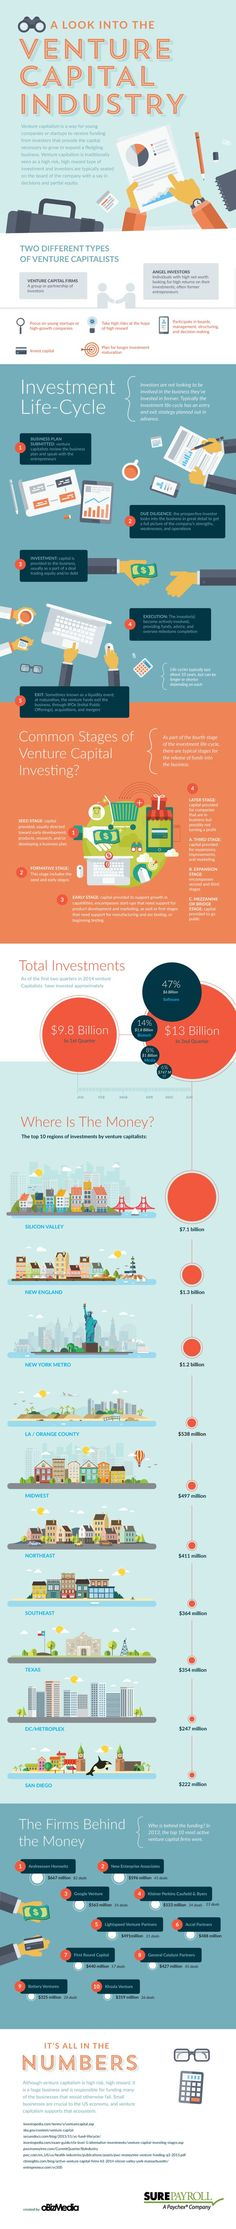 Venture capital is often discussed among small business owners, entrepreneurs and tech startups, but not always fully understood.. This infographic by SurePayroll provides a basic overview of the US venture capital industry. It explains the difference between capital venture firms and angle investors, investment lifecycle and investment stages. It also shows the regions where funds typically are invested and the top firms behind the funding. #angleinvestors #venturecapitalists…